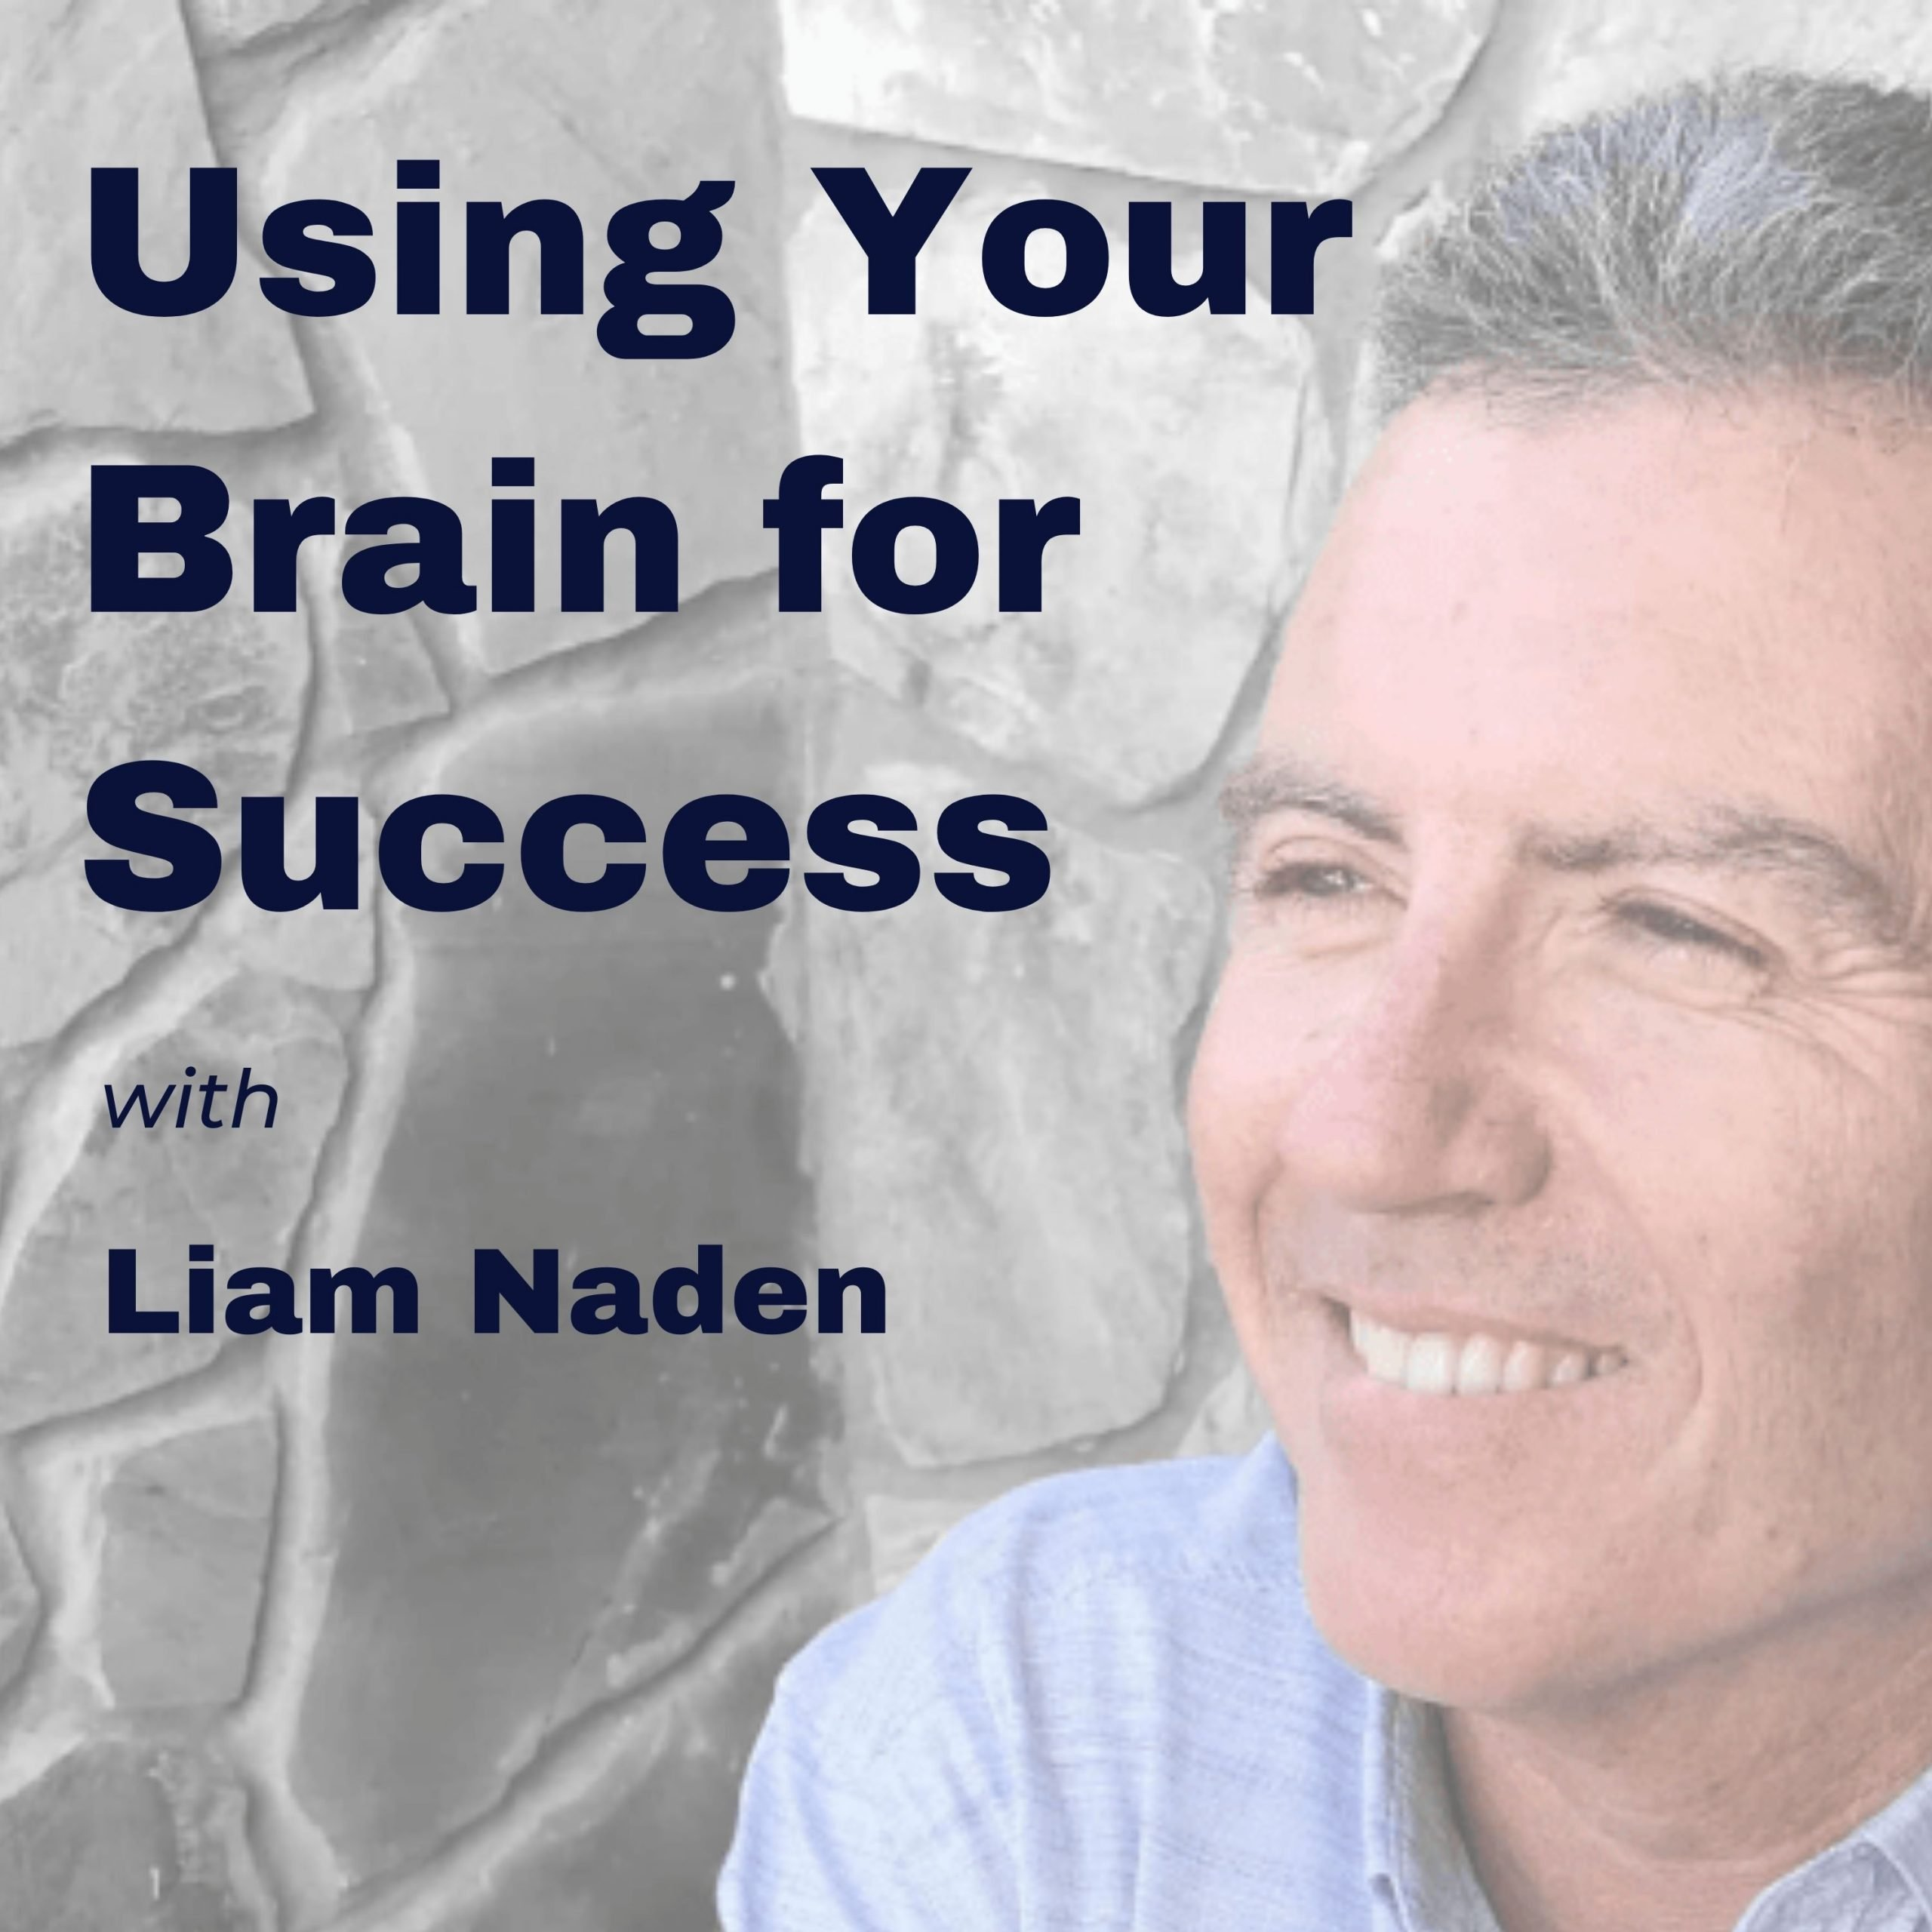 Using Your Brain for Success: Creating Your Ideal Life through the Power of Your Brain